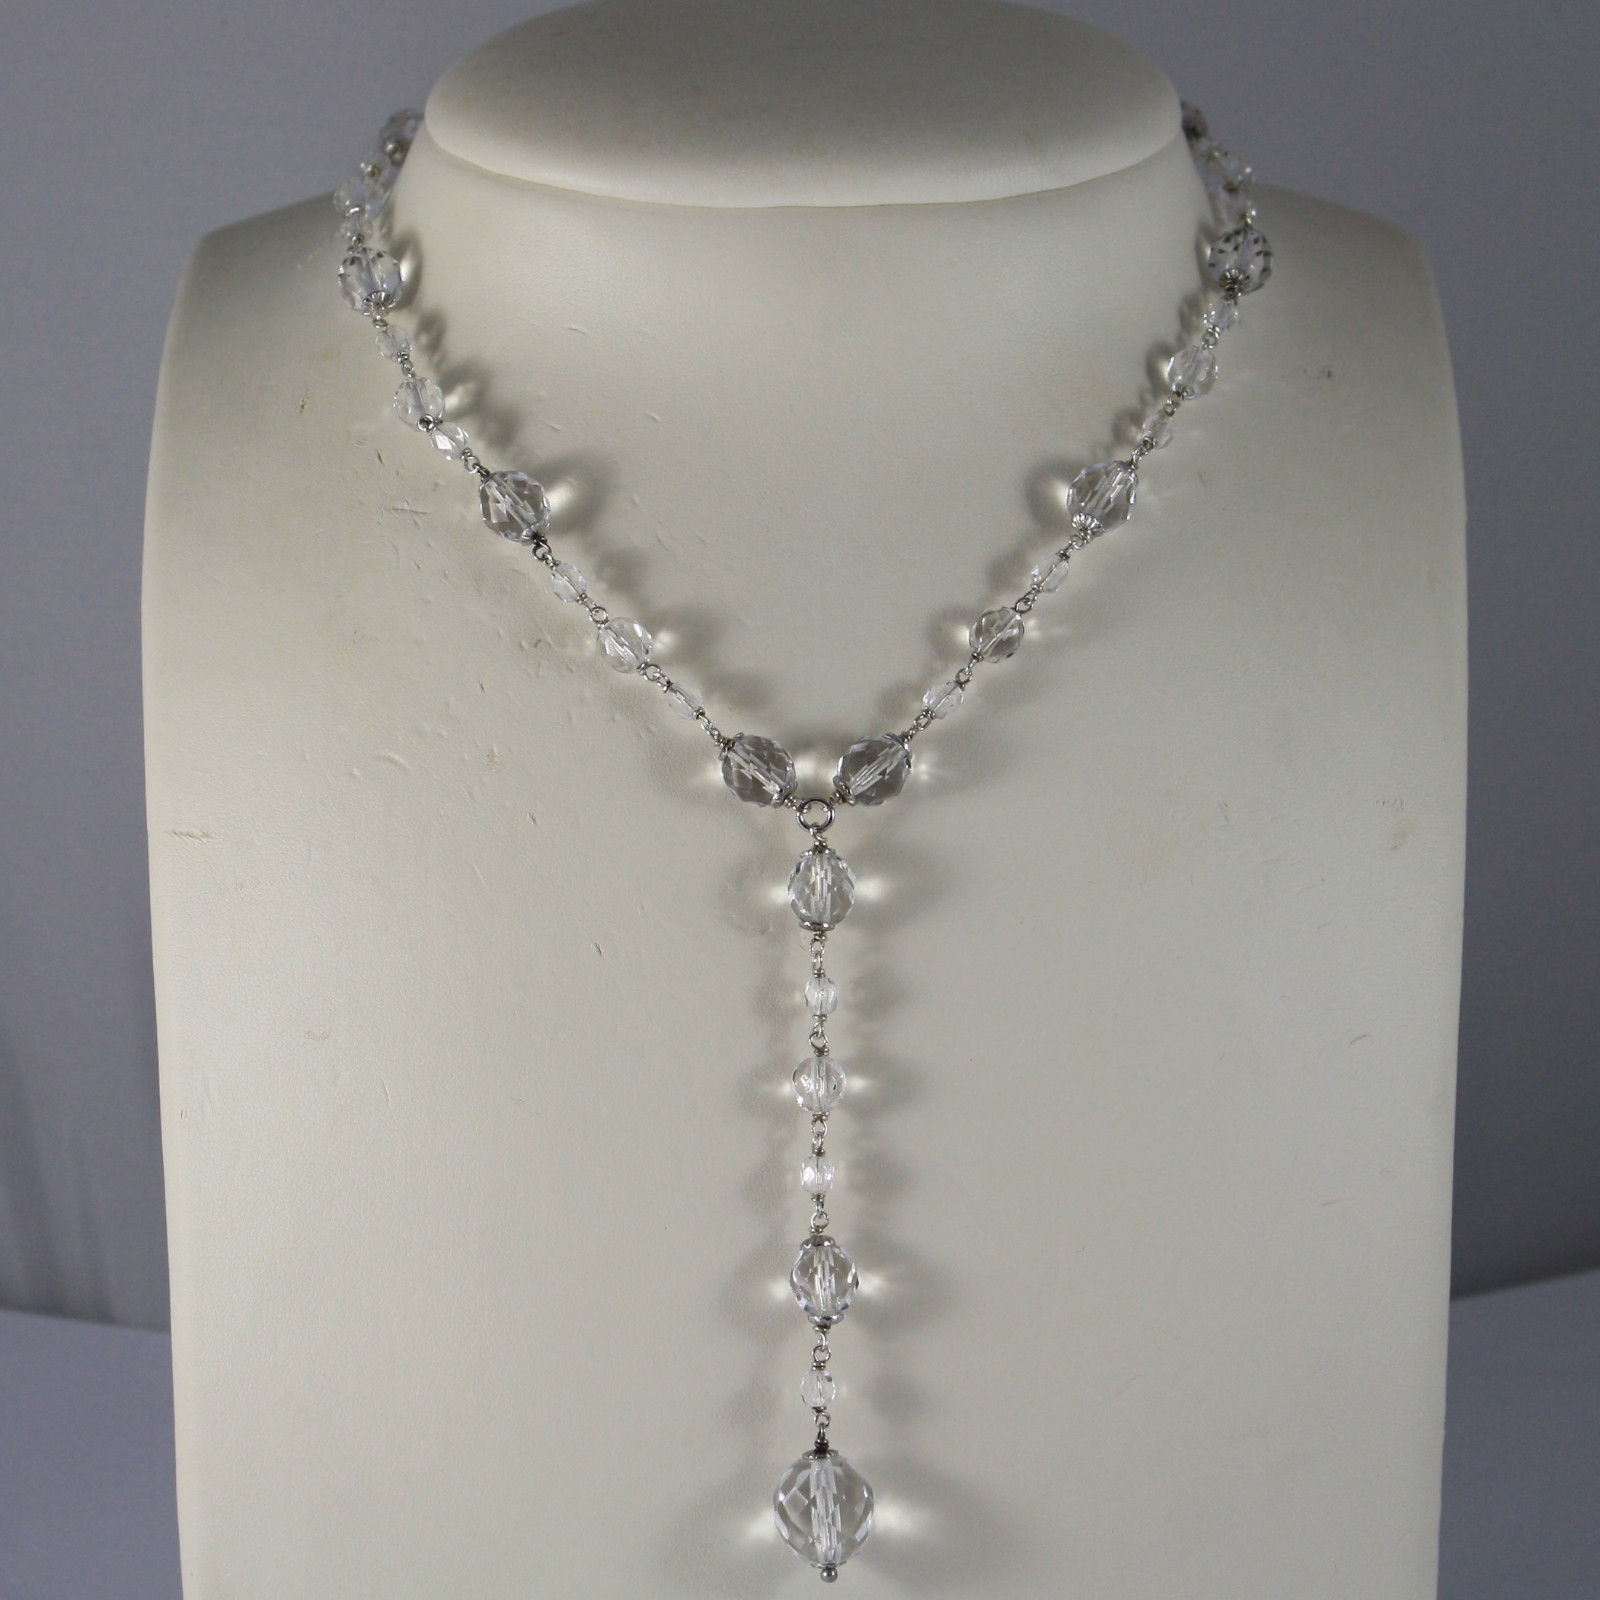 .925 RHODIUM NECKLACE WITH TRANSPARENT FACETED CRYSTALS